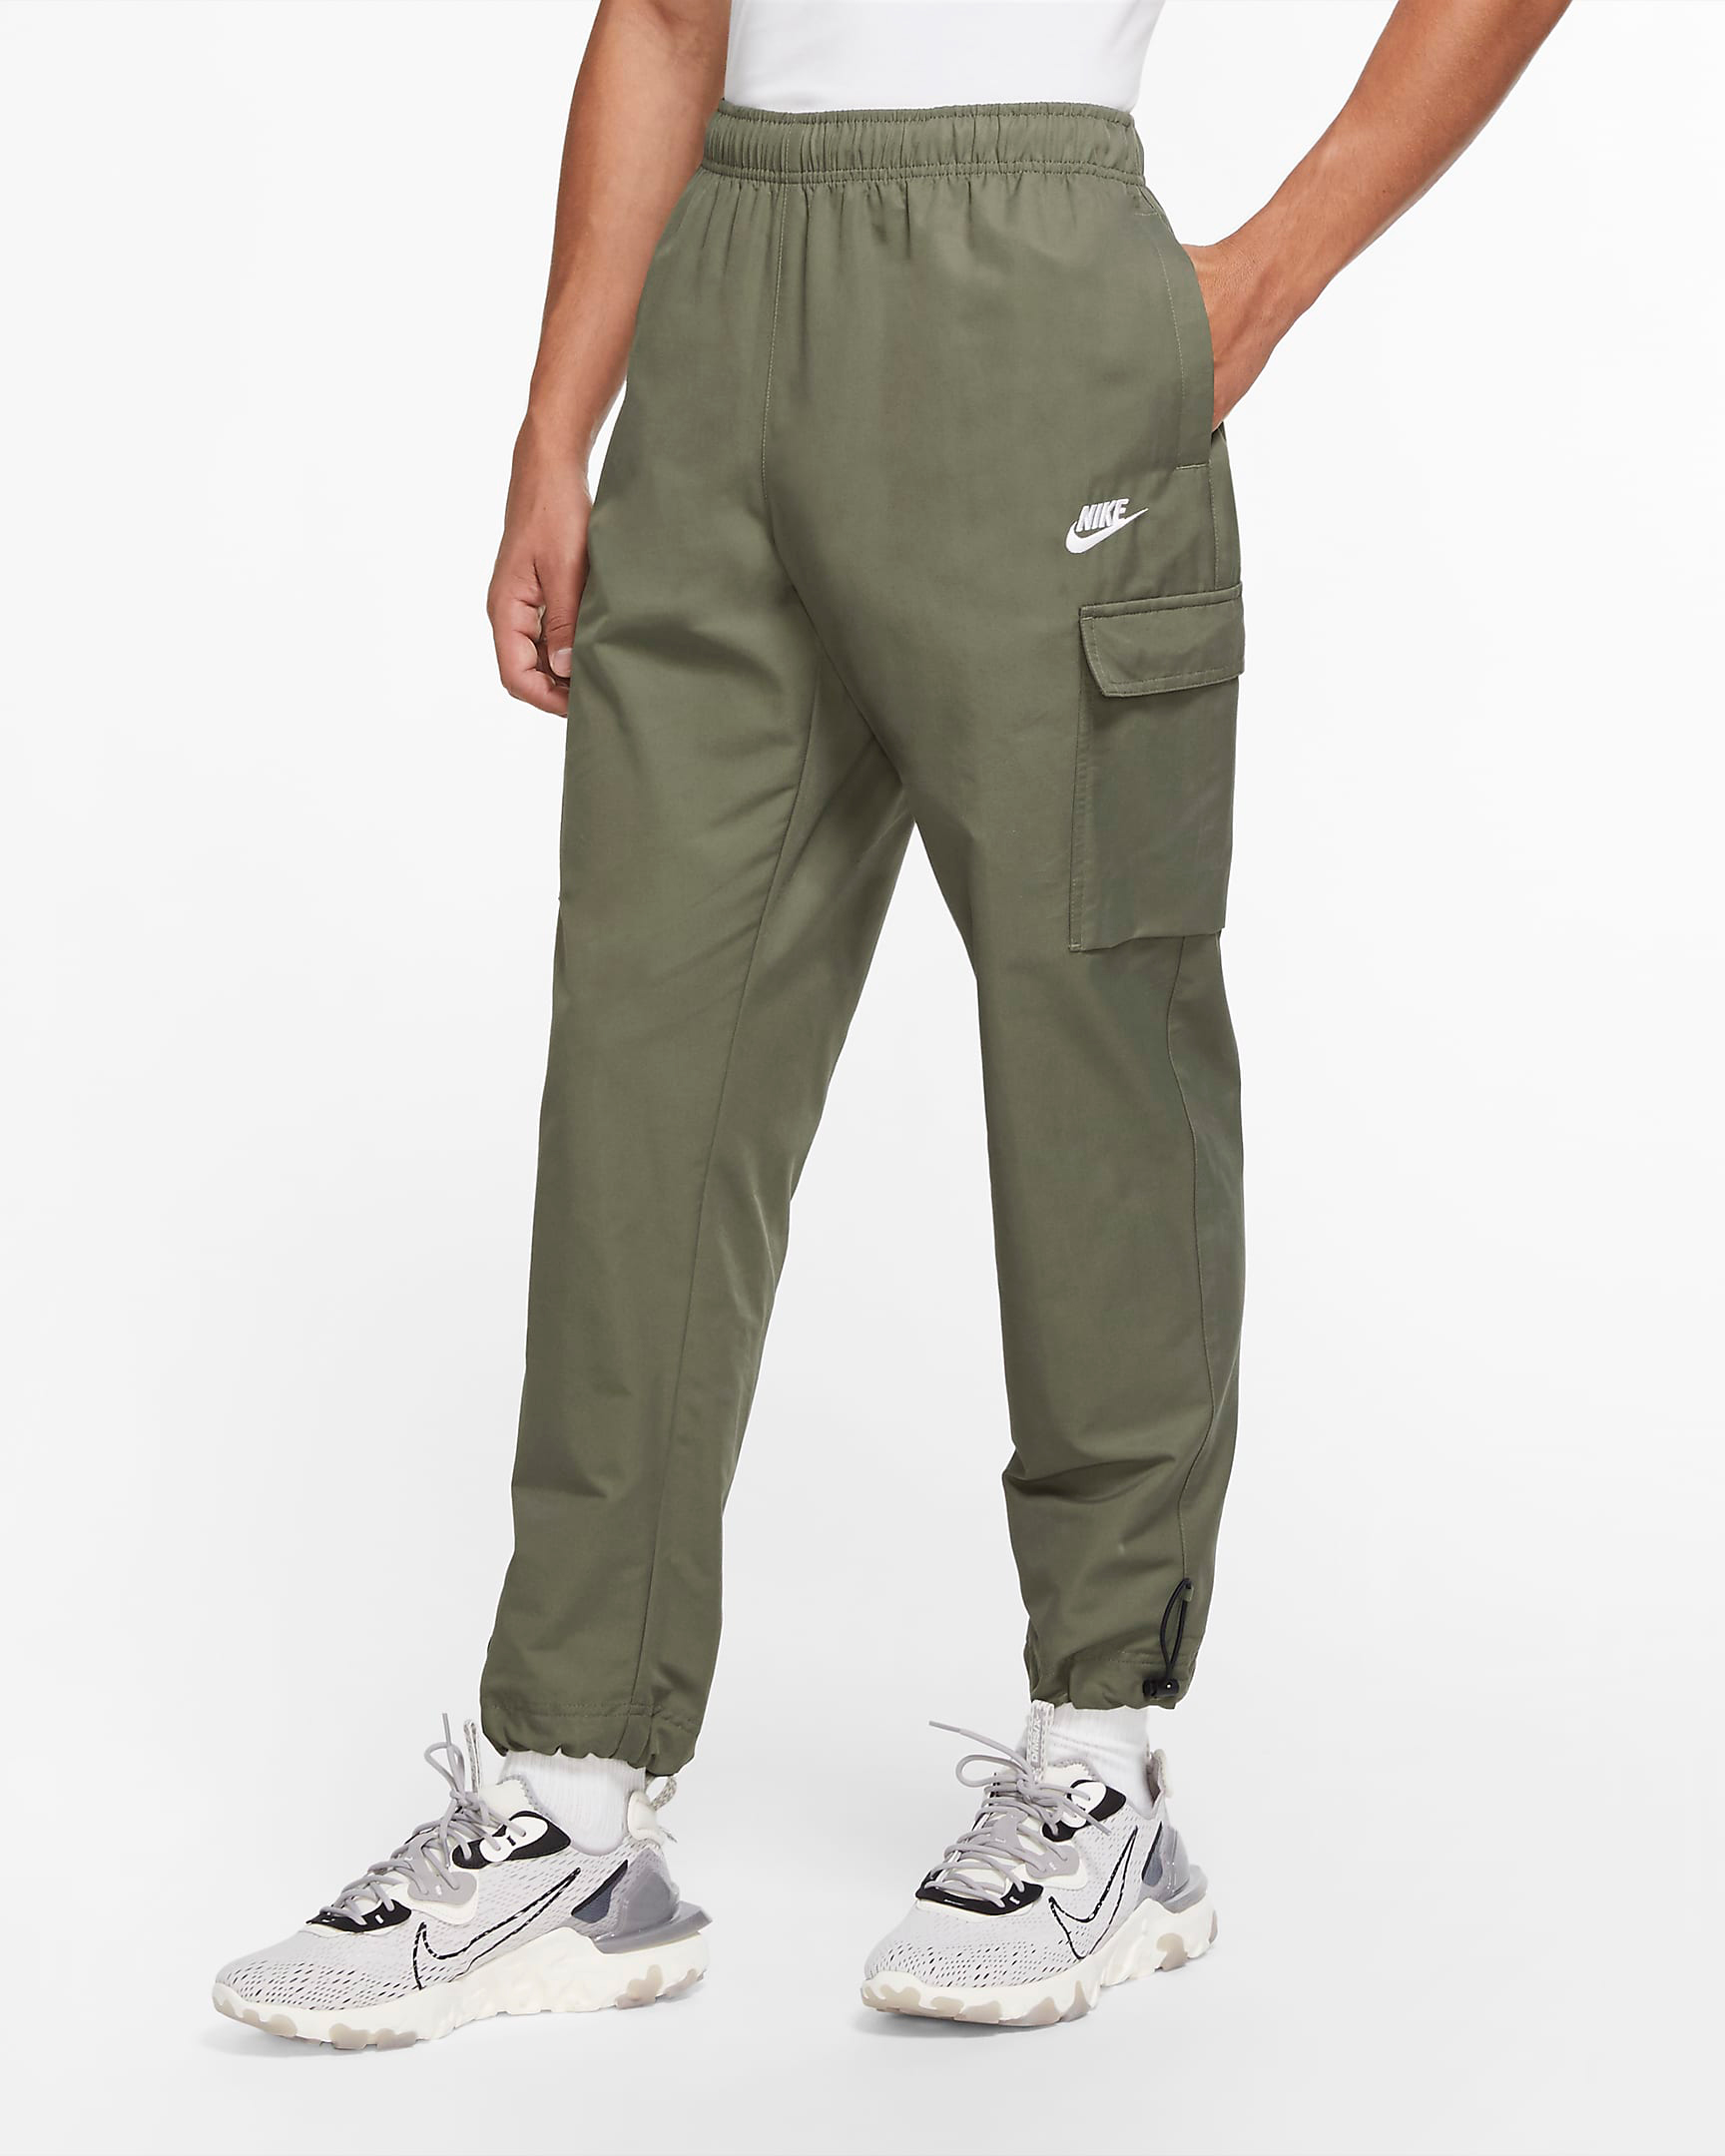 nike-air-tuned-max-celery-cargo-pants-1